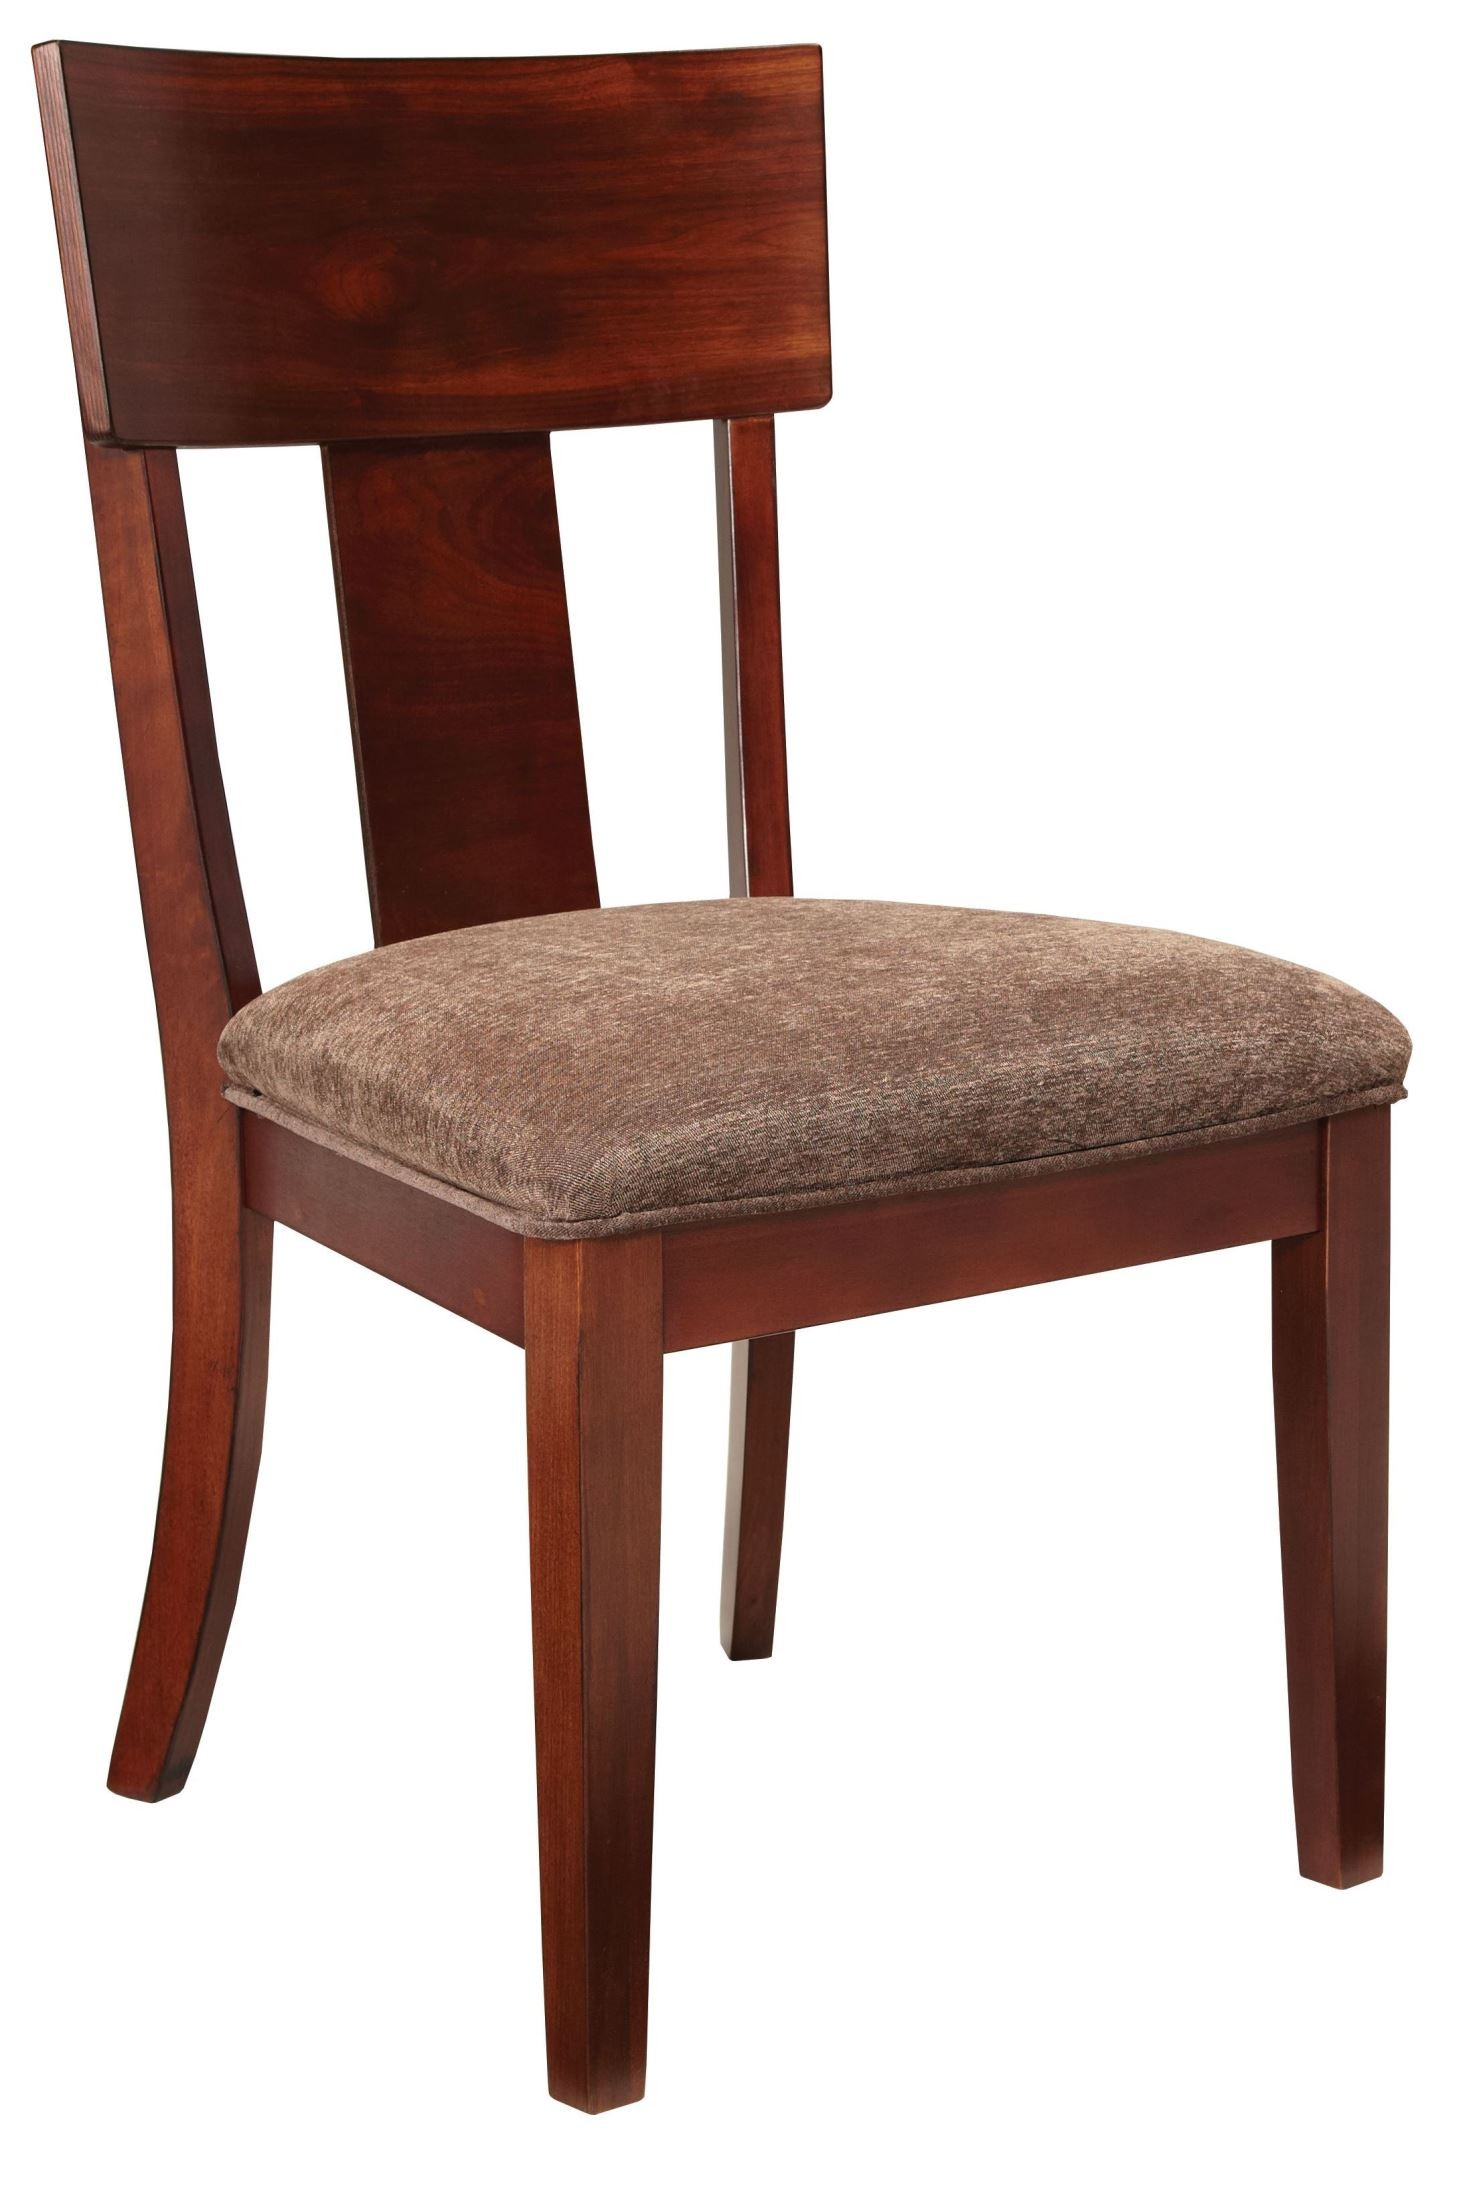 Studio Chairs Studio Brown Mahogany Side Chair Set Of 2 From Somerton